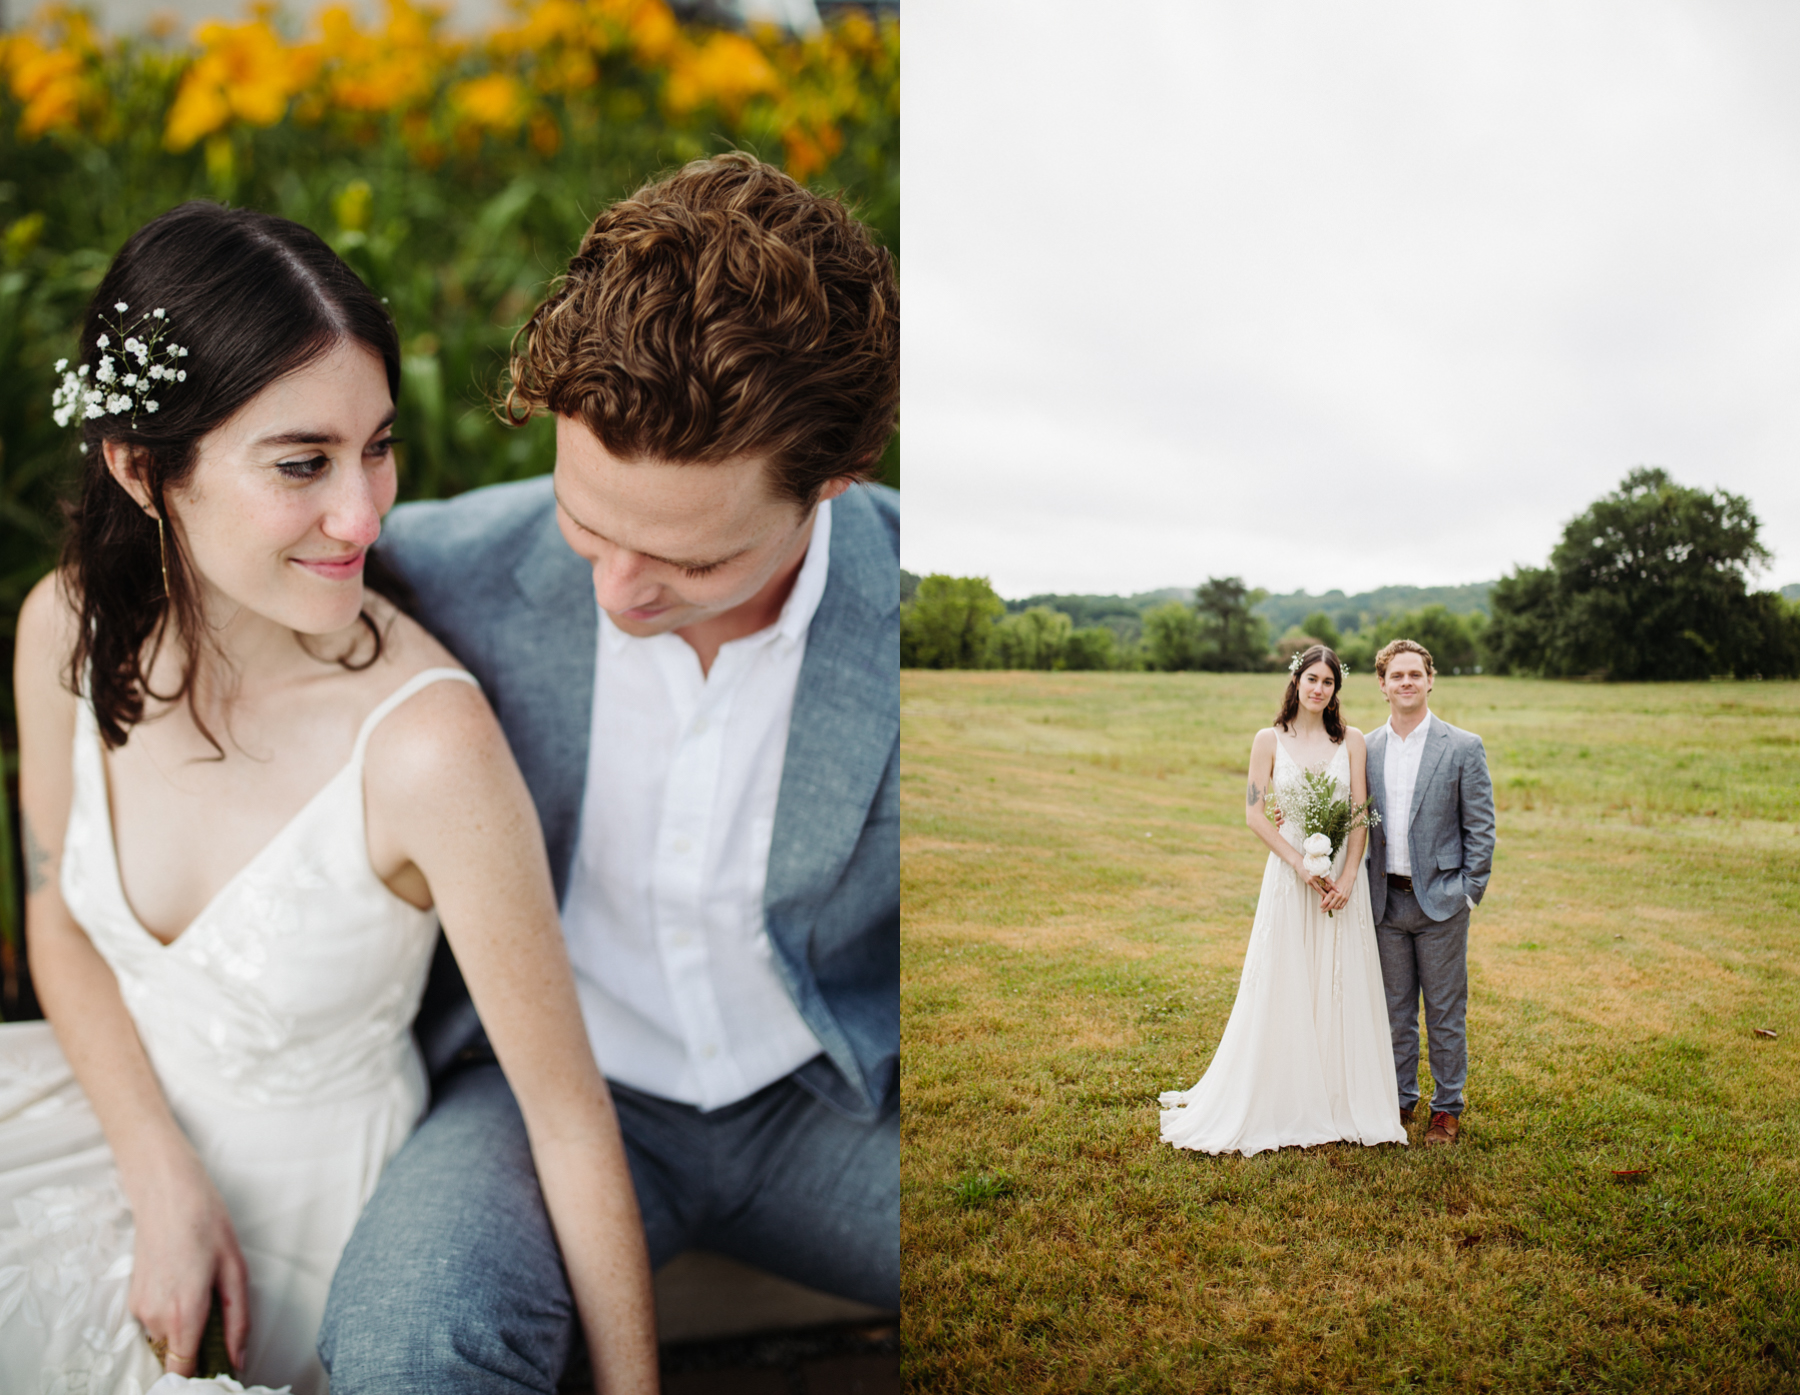 bride and groom portraits in a lily field before their downtown knoxville wedding at redeemer church